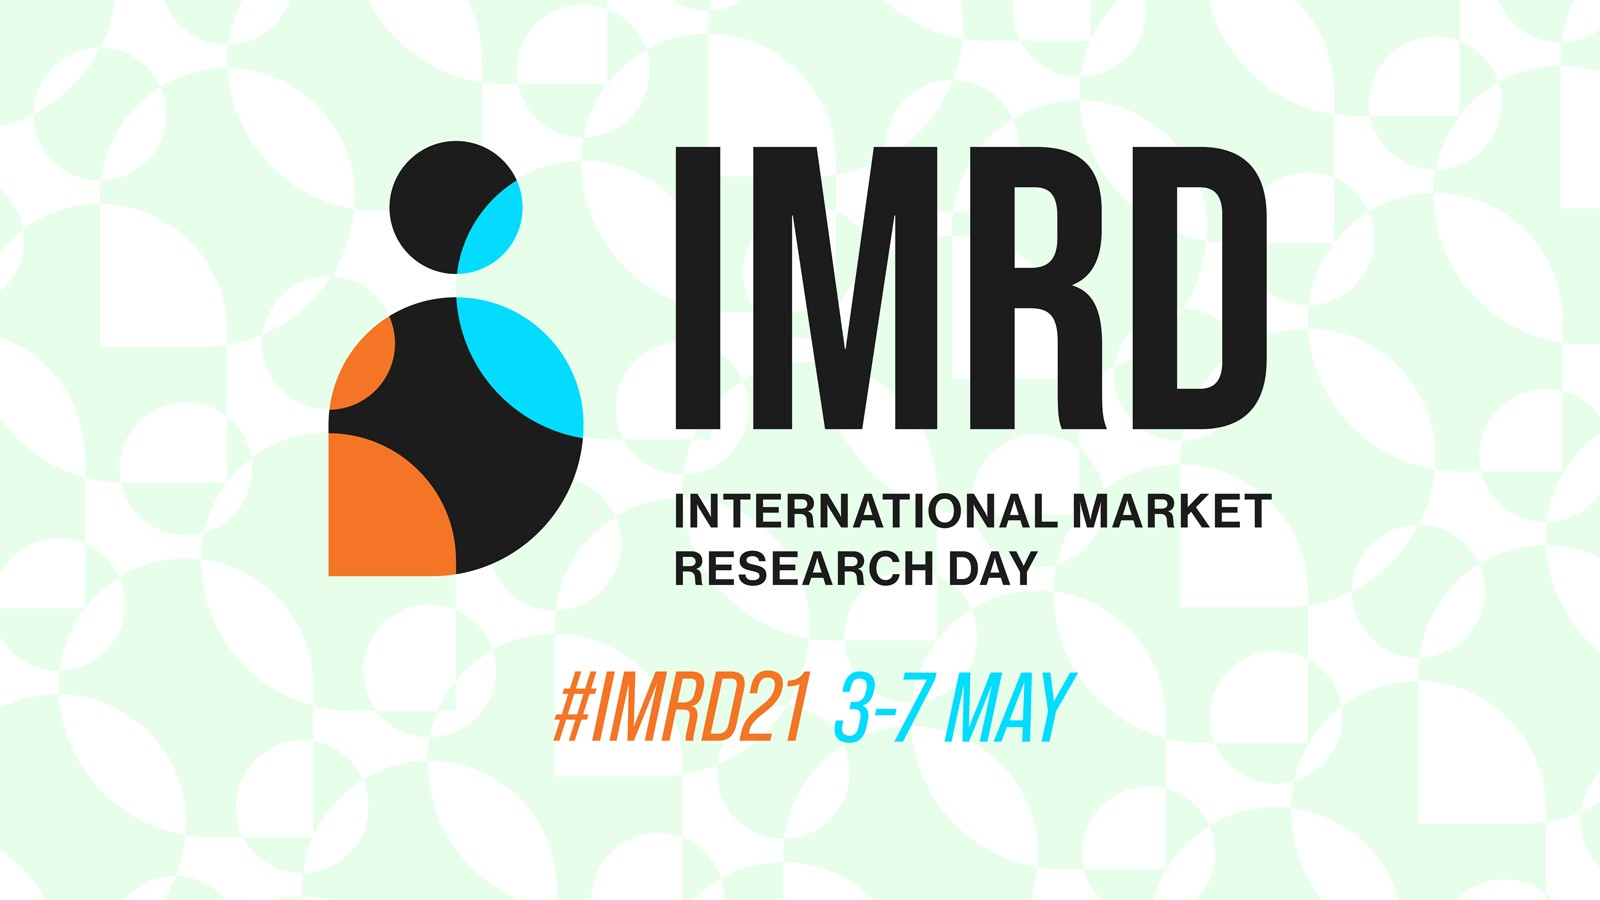 International Market Research Day 2021 (IMRD)